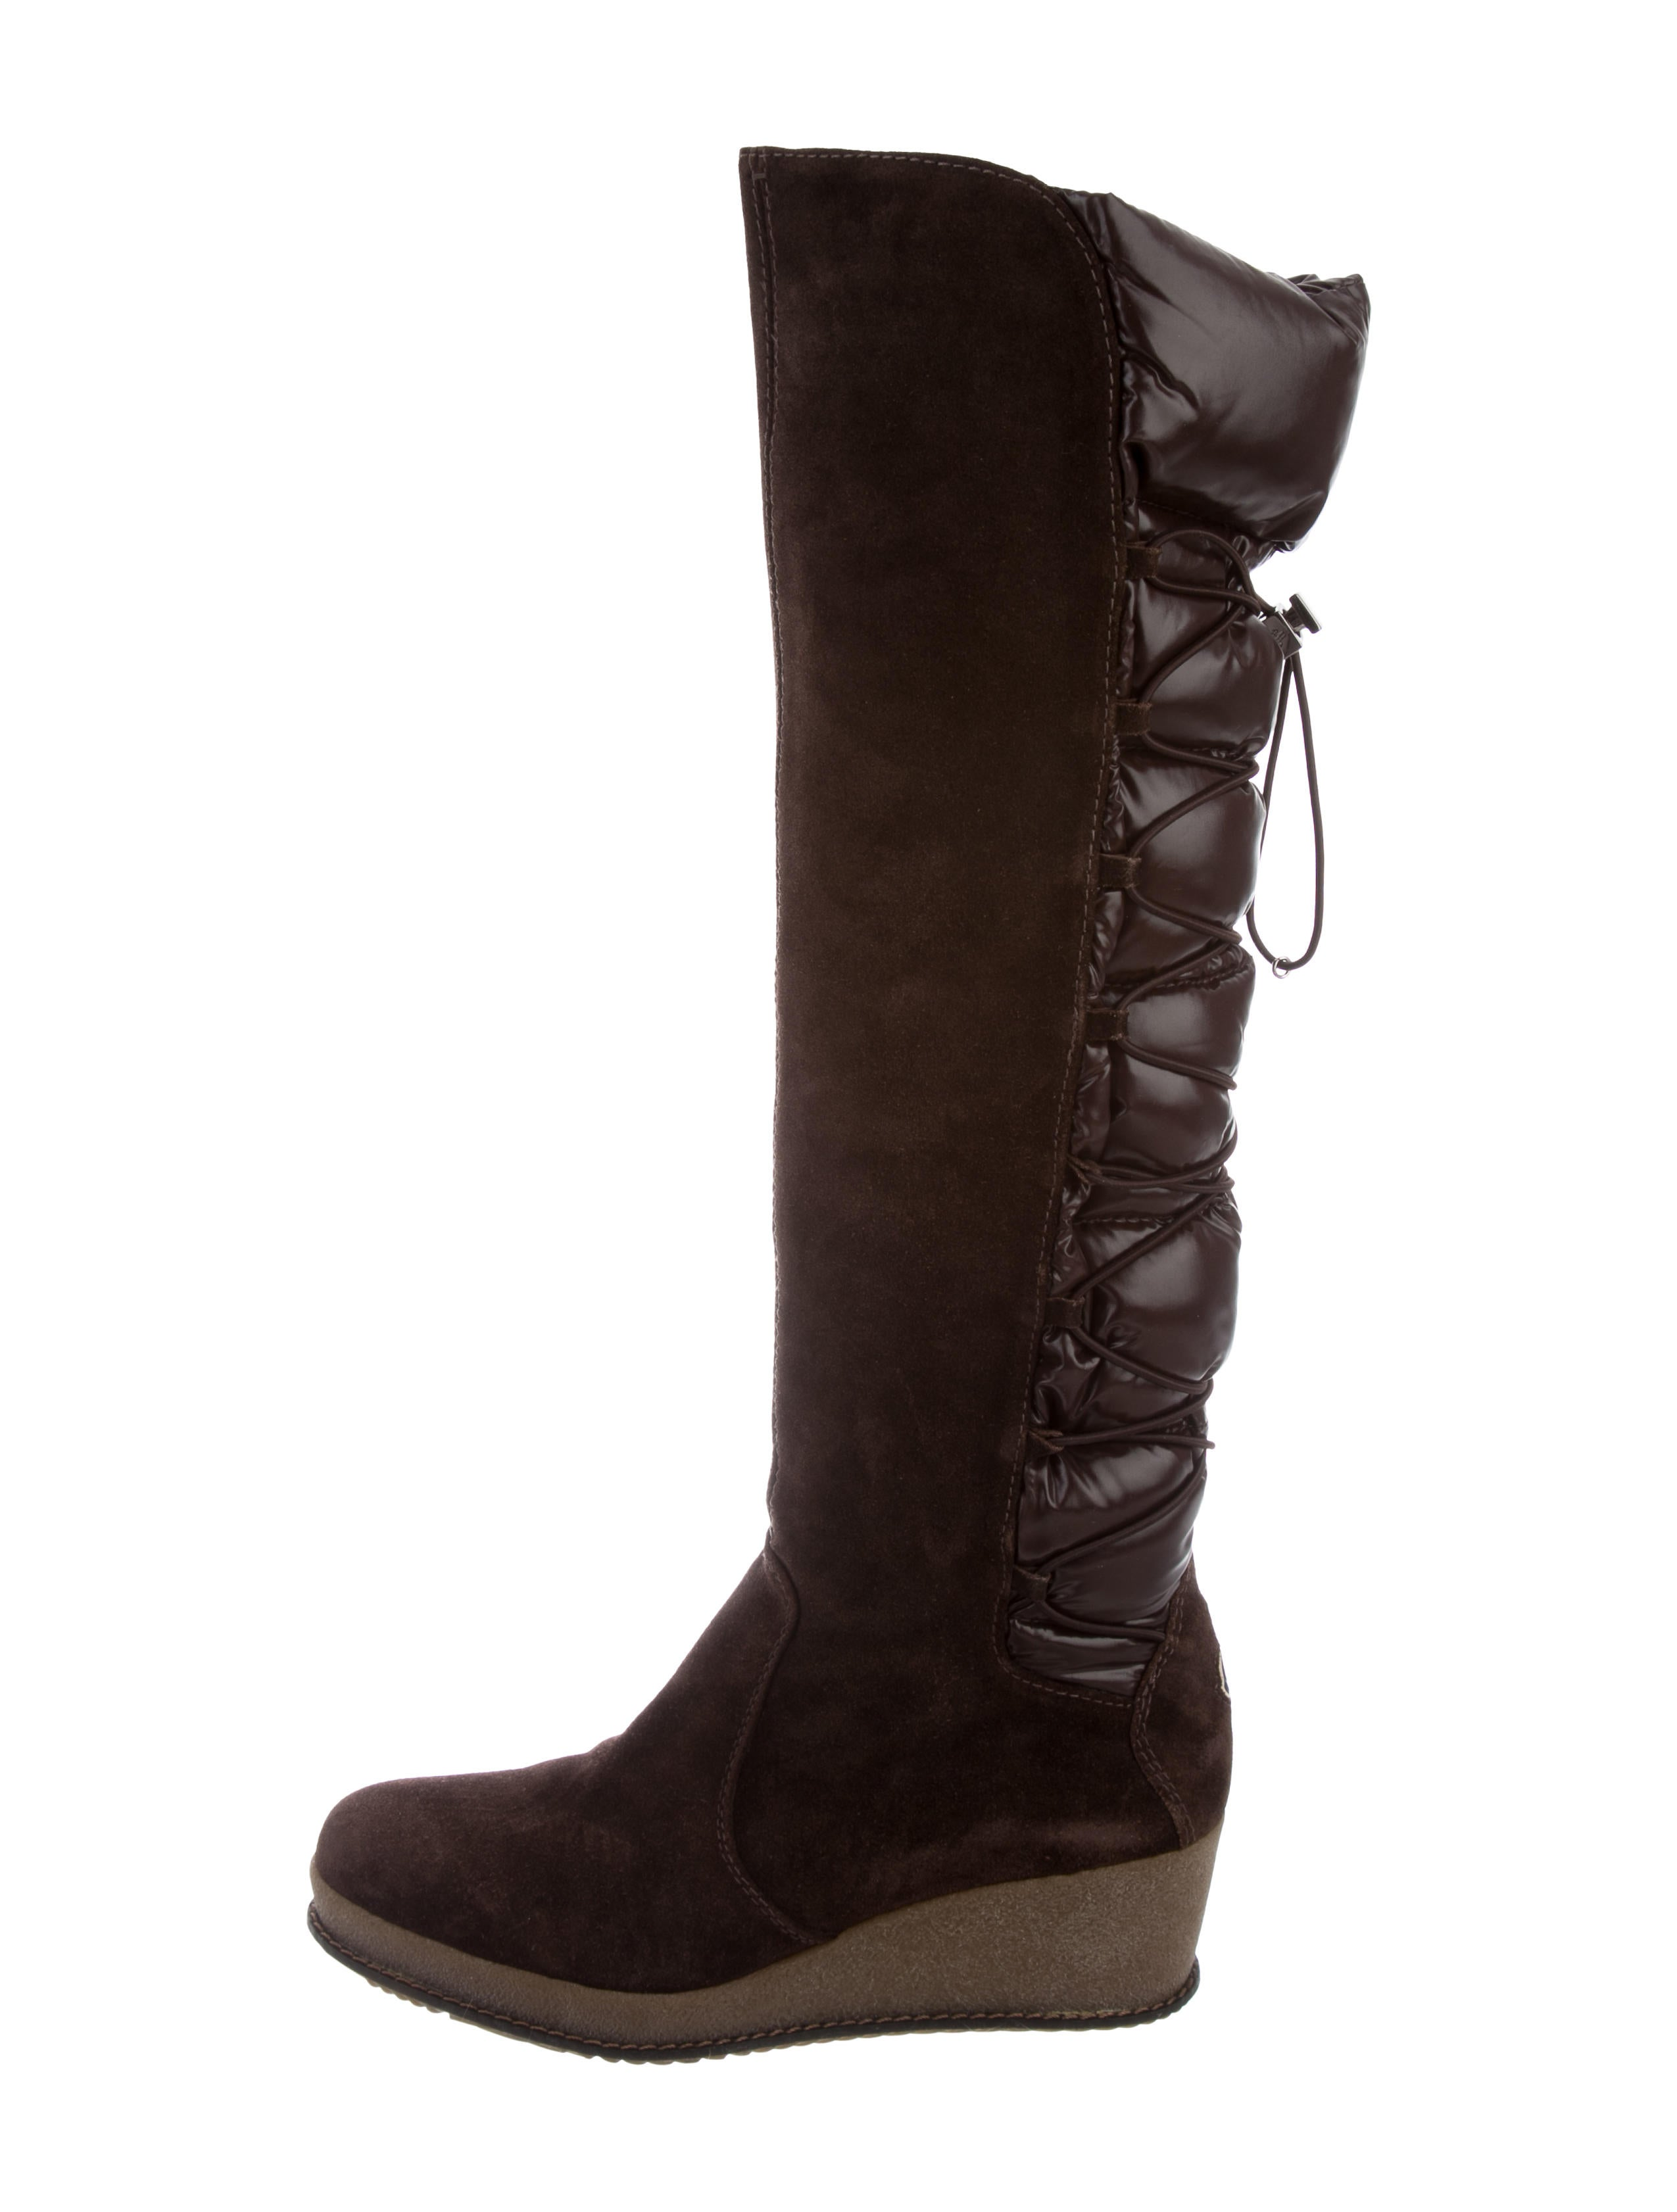 Moncler Geneve Wedge Boots - Shoes - MOC29508   The RealReal 1426103c046